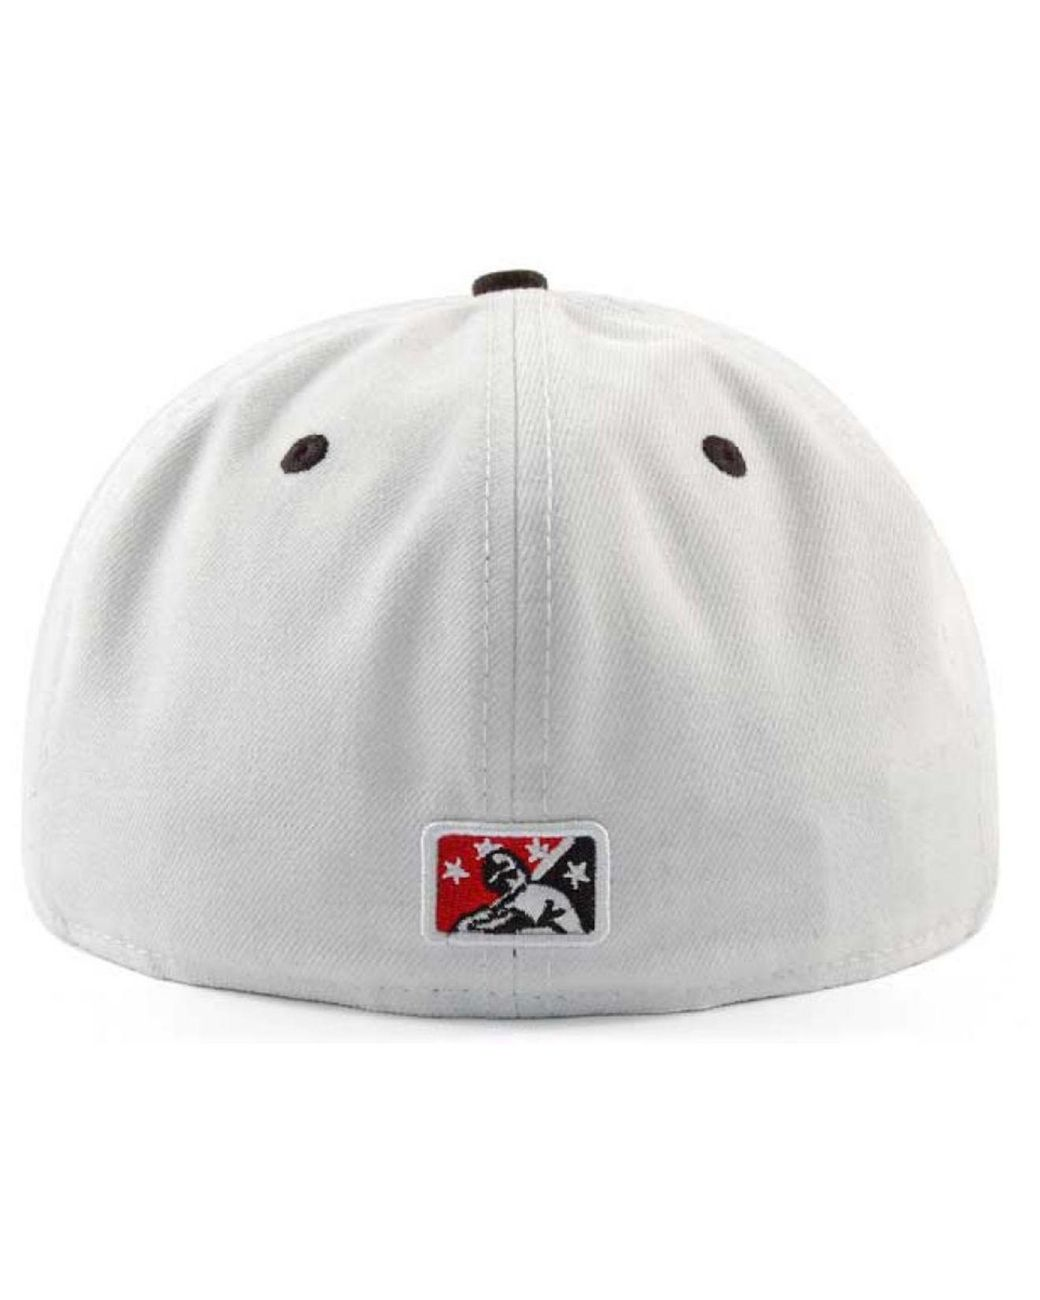 separation shoes beba7 0dd48 KTZ Carolina Mudcats Ac 59fifty Fitted Cap in White for Men - Lyst